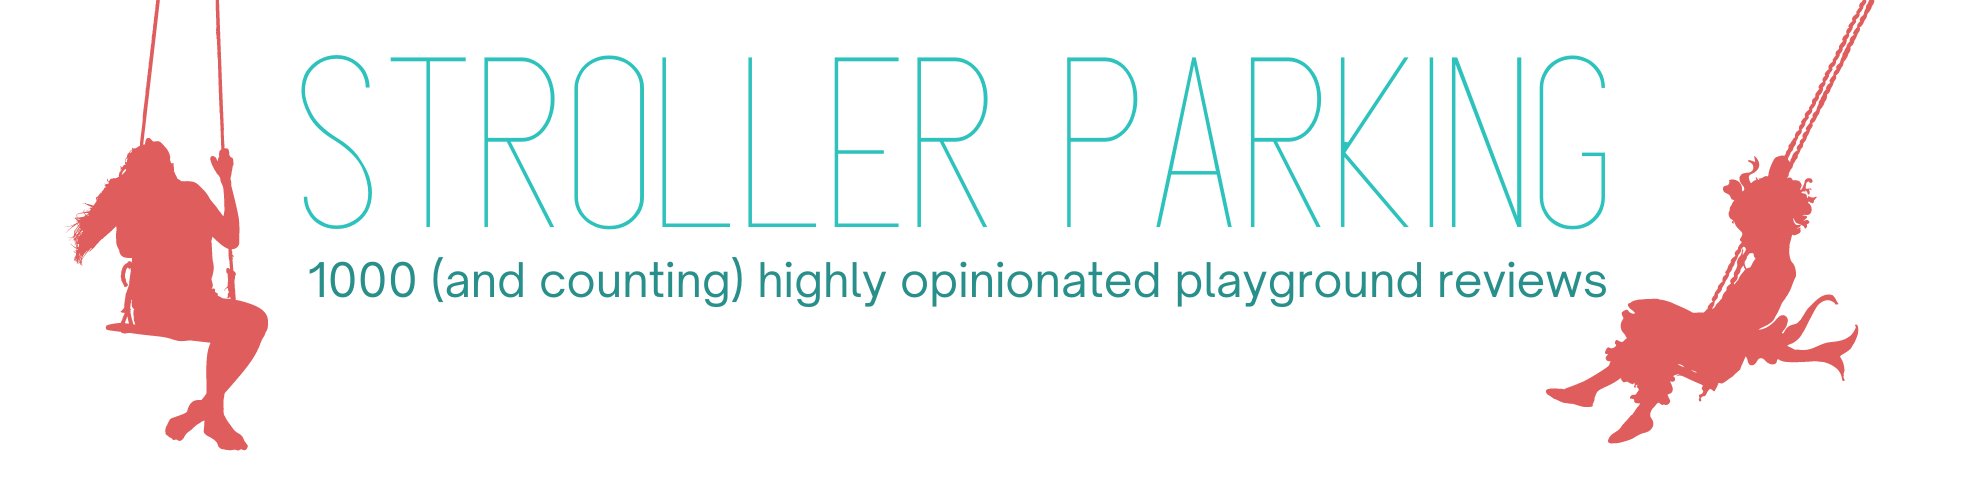 StrollerParking - (1000 and counting) highly opinionated playground reviews